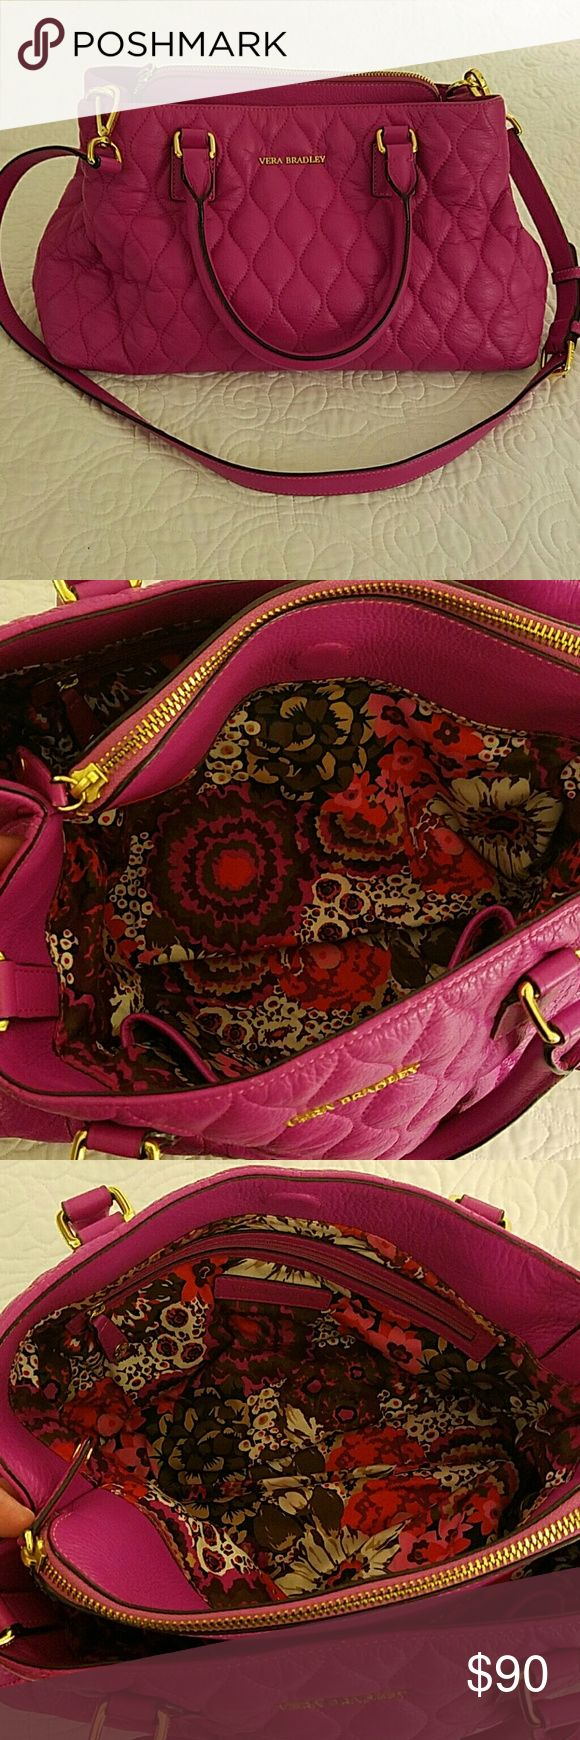 Vera Bradley Quilted Leather Pink Shoulder Bag This color is beautiful! This bag is large and roomy, will even hold your iPad.  Plenty of pockets for organizing.  There is some wear on each of the 4 corners, please see pictures.  Other than corn wear, bag is in great condition!  No tears or signs of wearing on the handles or inside bag.  The price reflects the corner wear.  This is a very beautiful bag to carry, you will get compliments for sure! I have wallet to match!  Sold separately but…